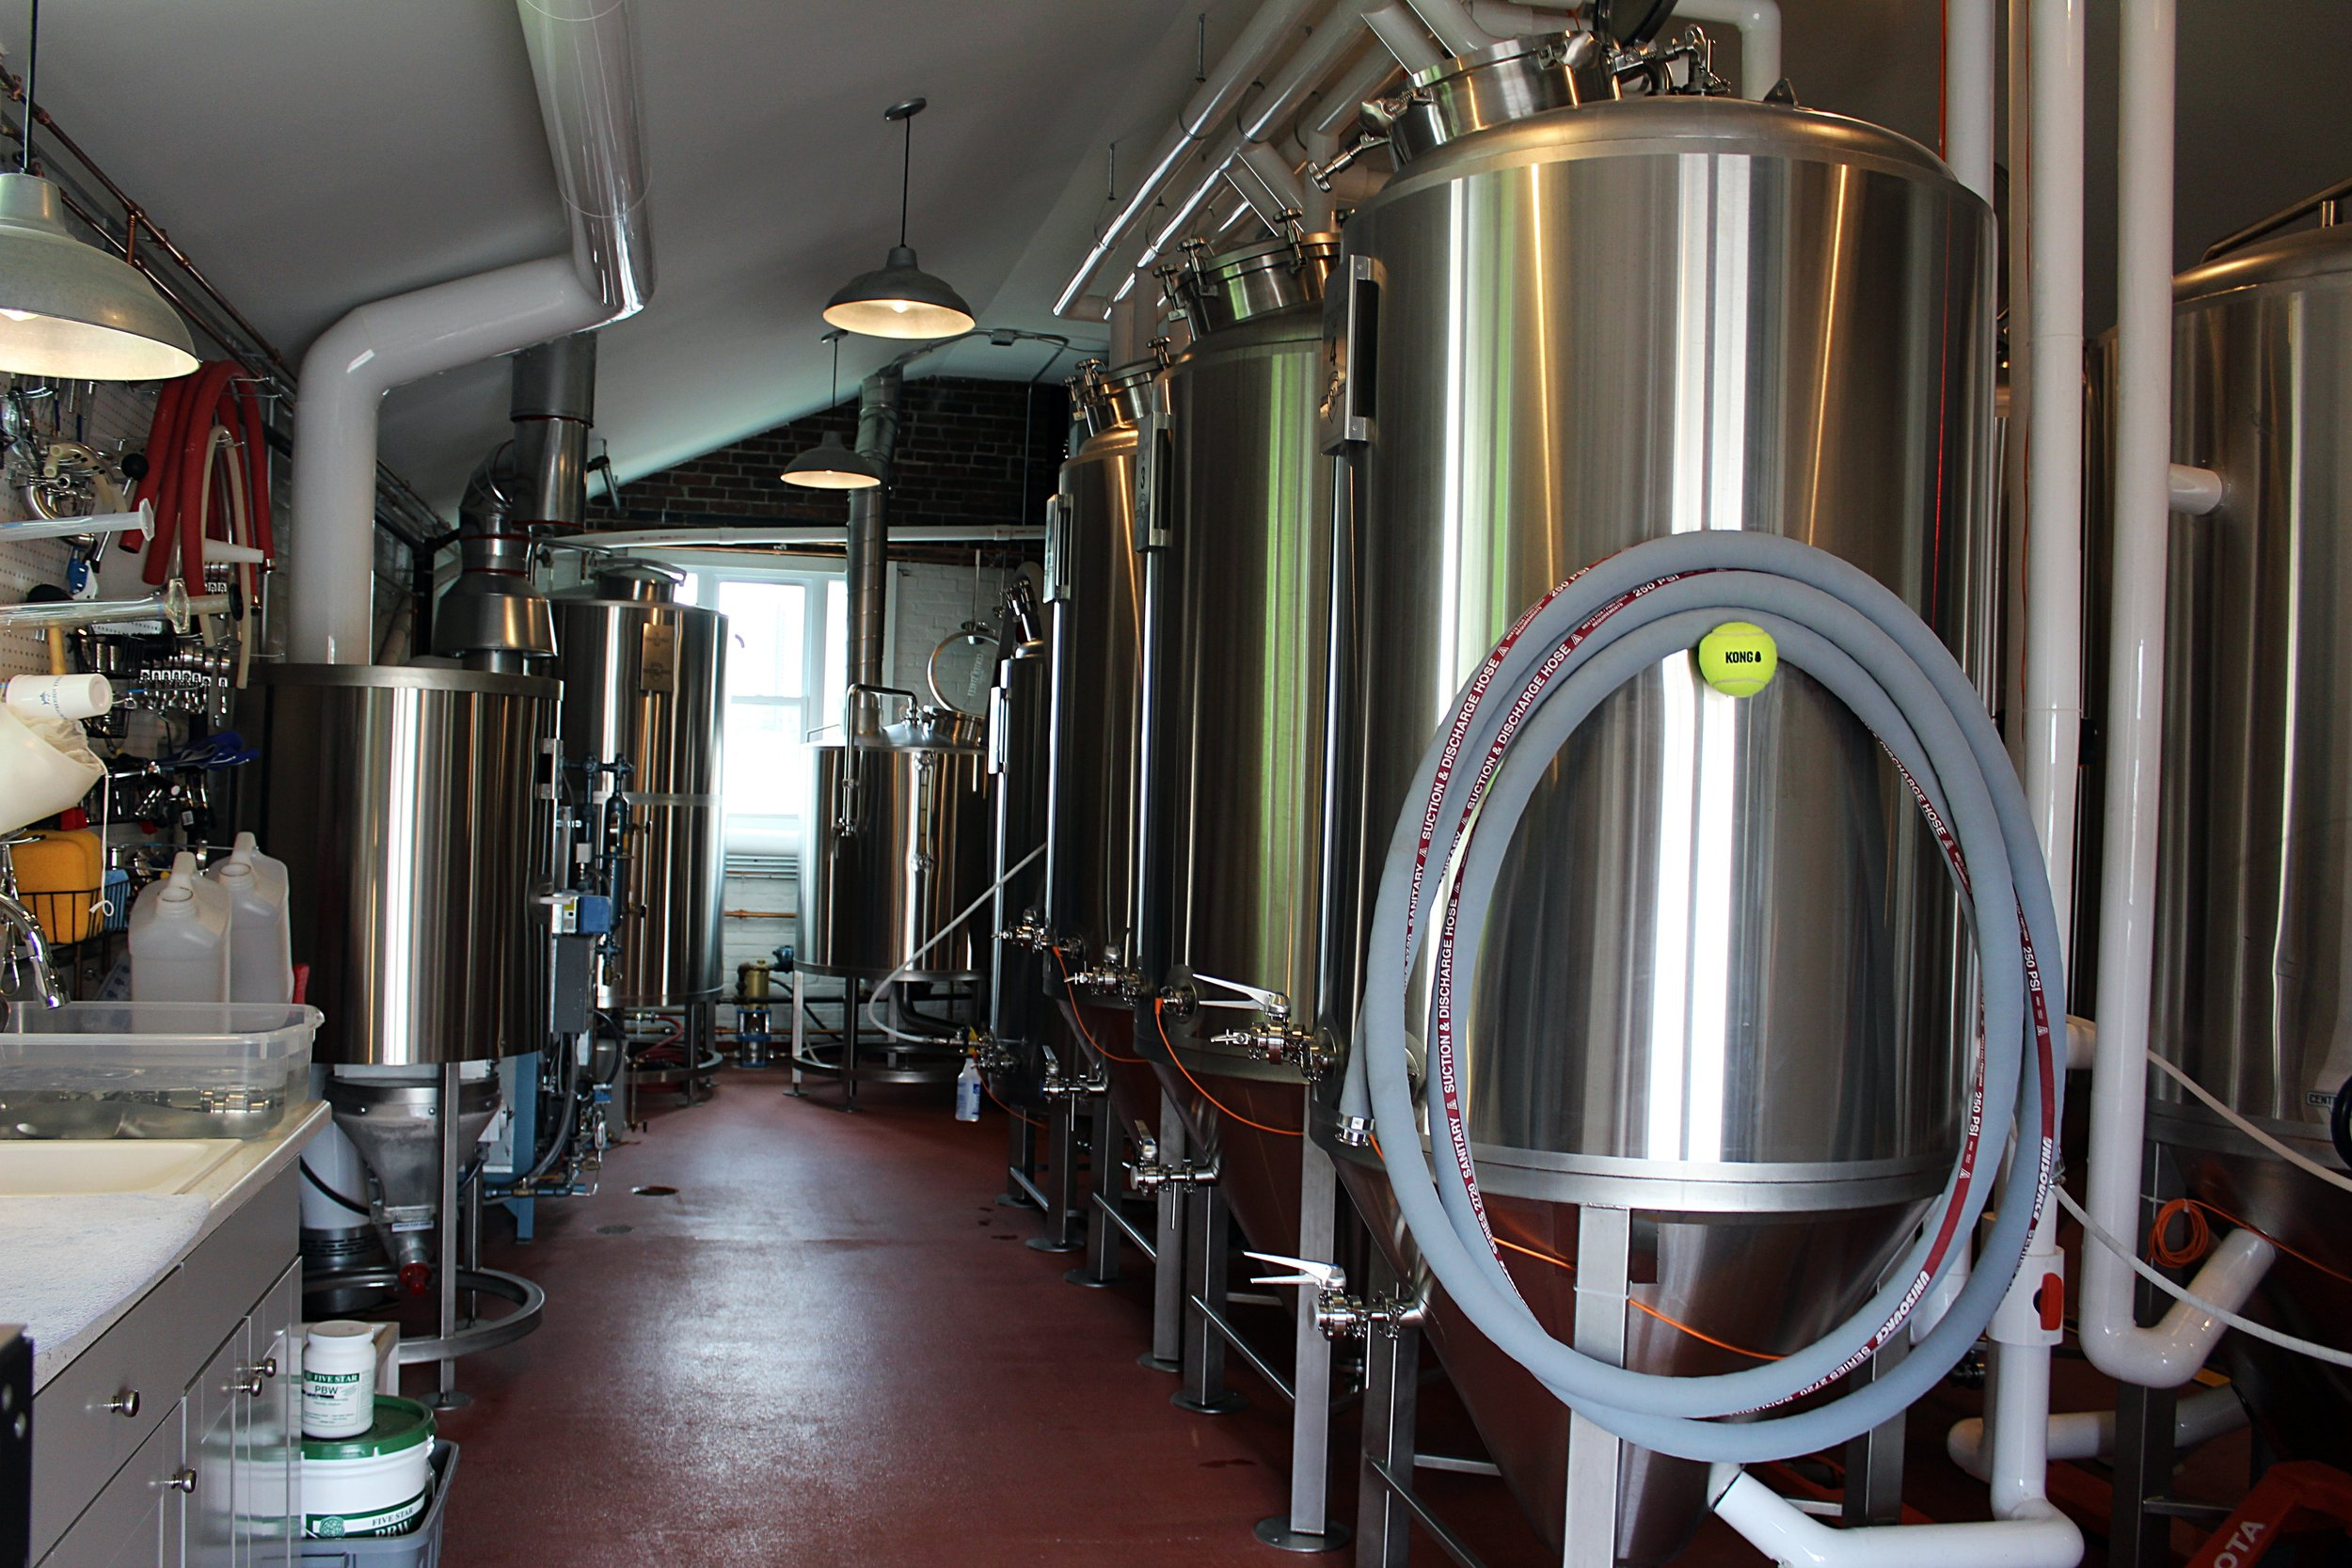 Where all the magic happens; our brew house is located in the back of our brewery where we brew all of our beers in-house